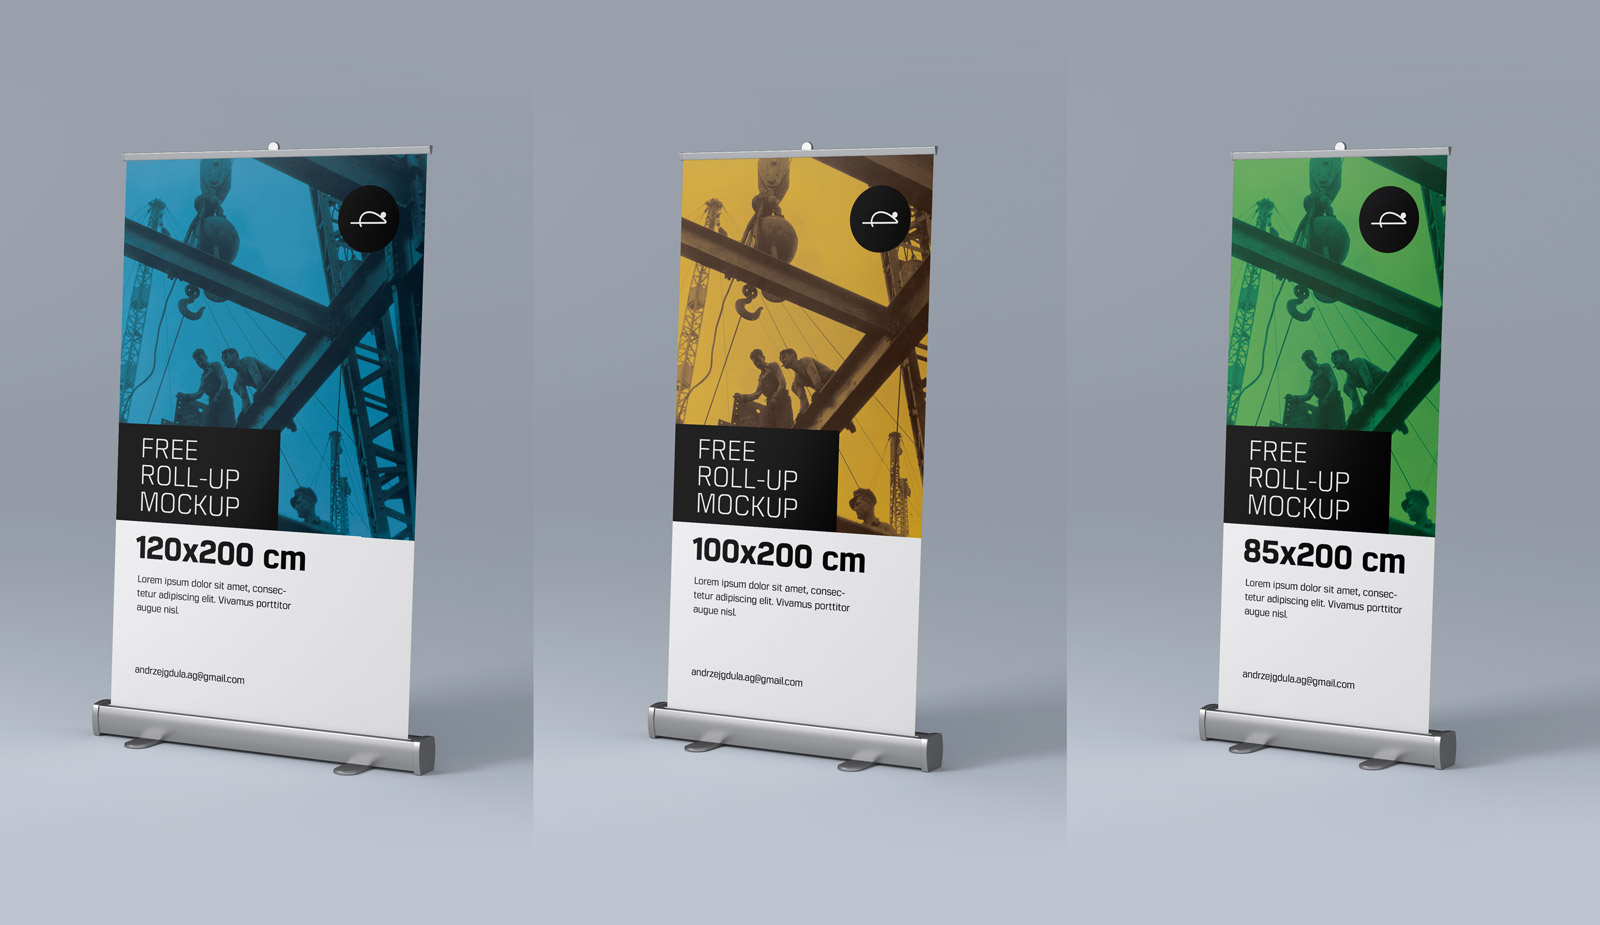 Free-Rollup-Banner-Stand--Mockup-PSD